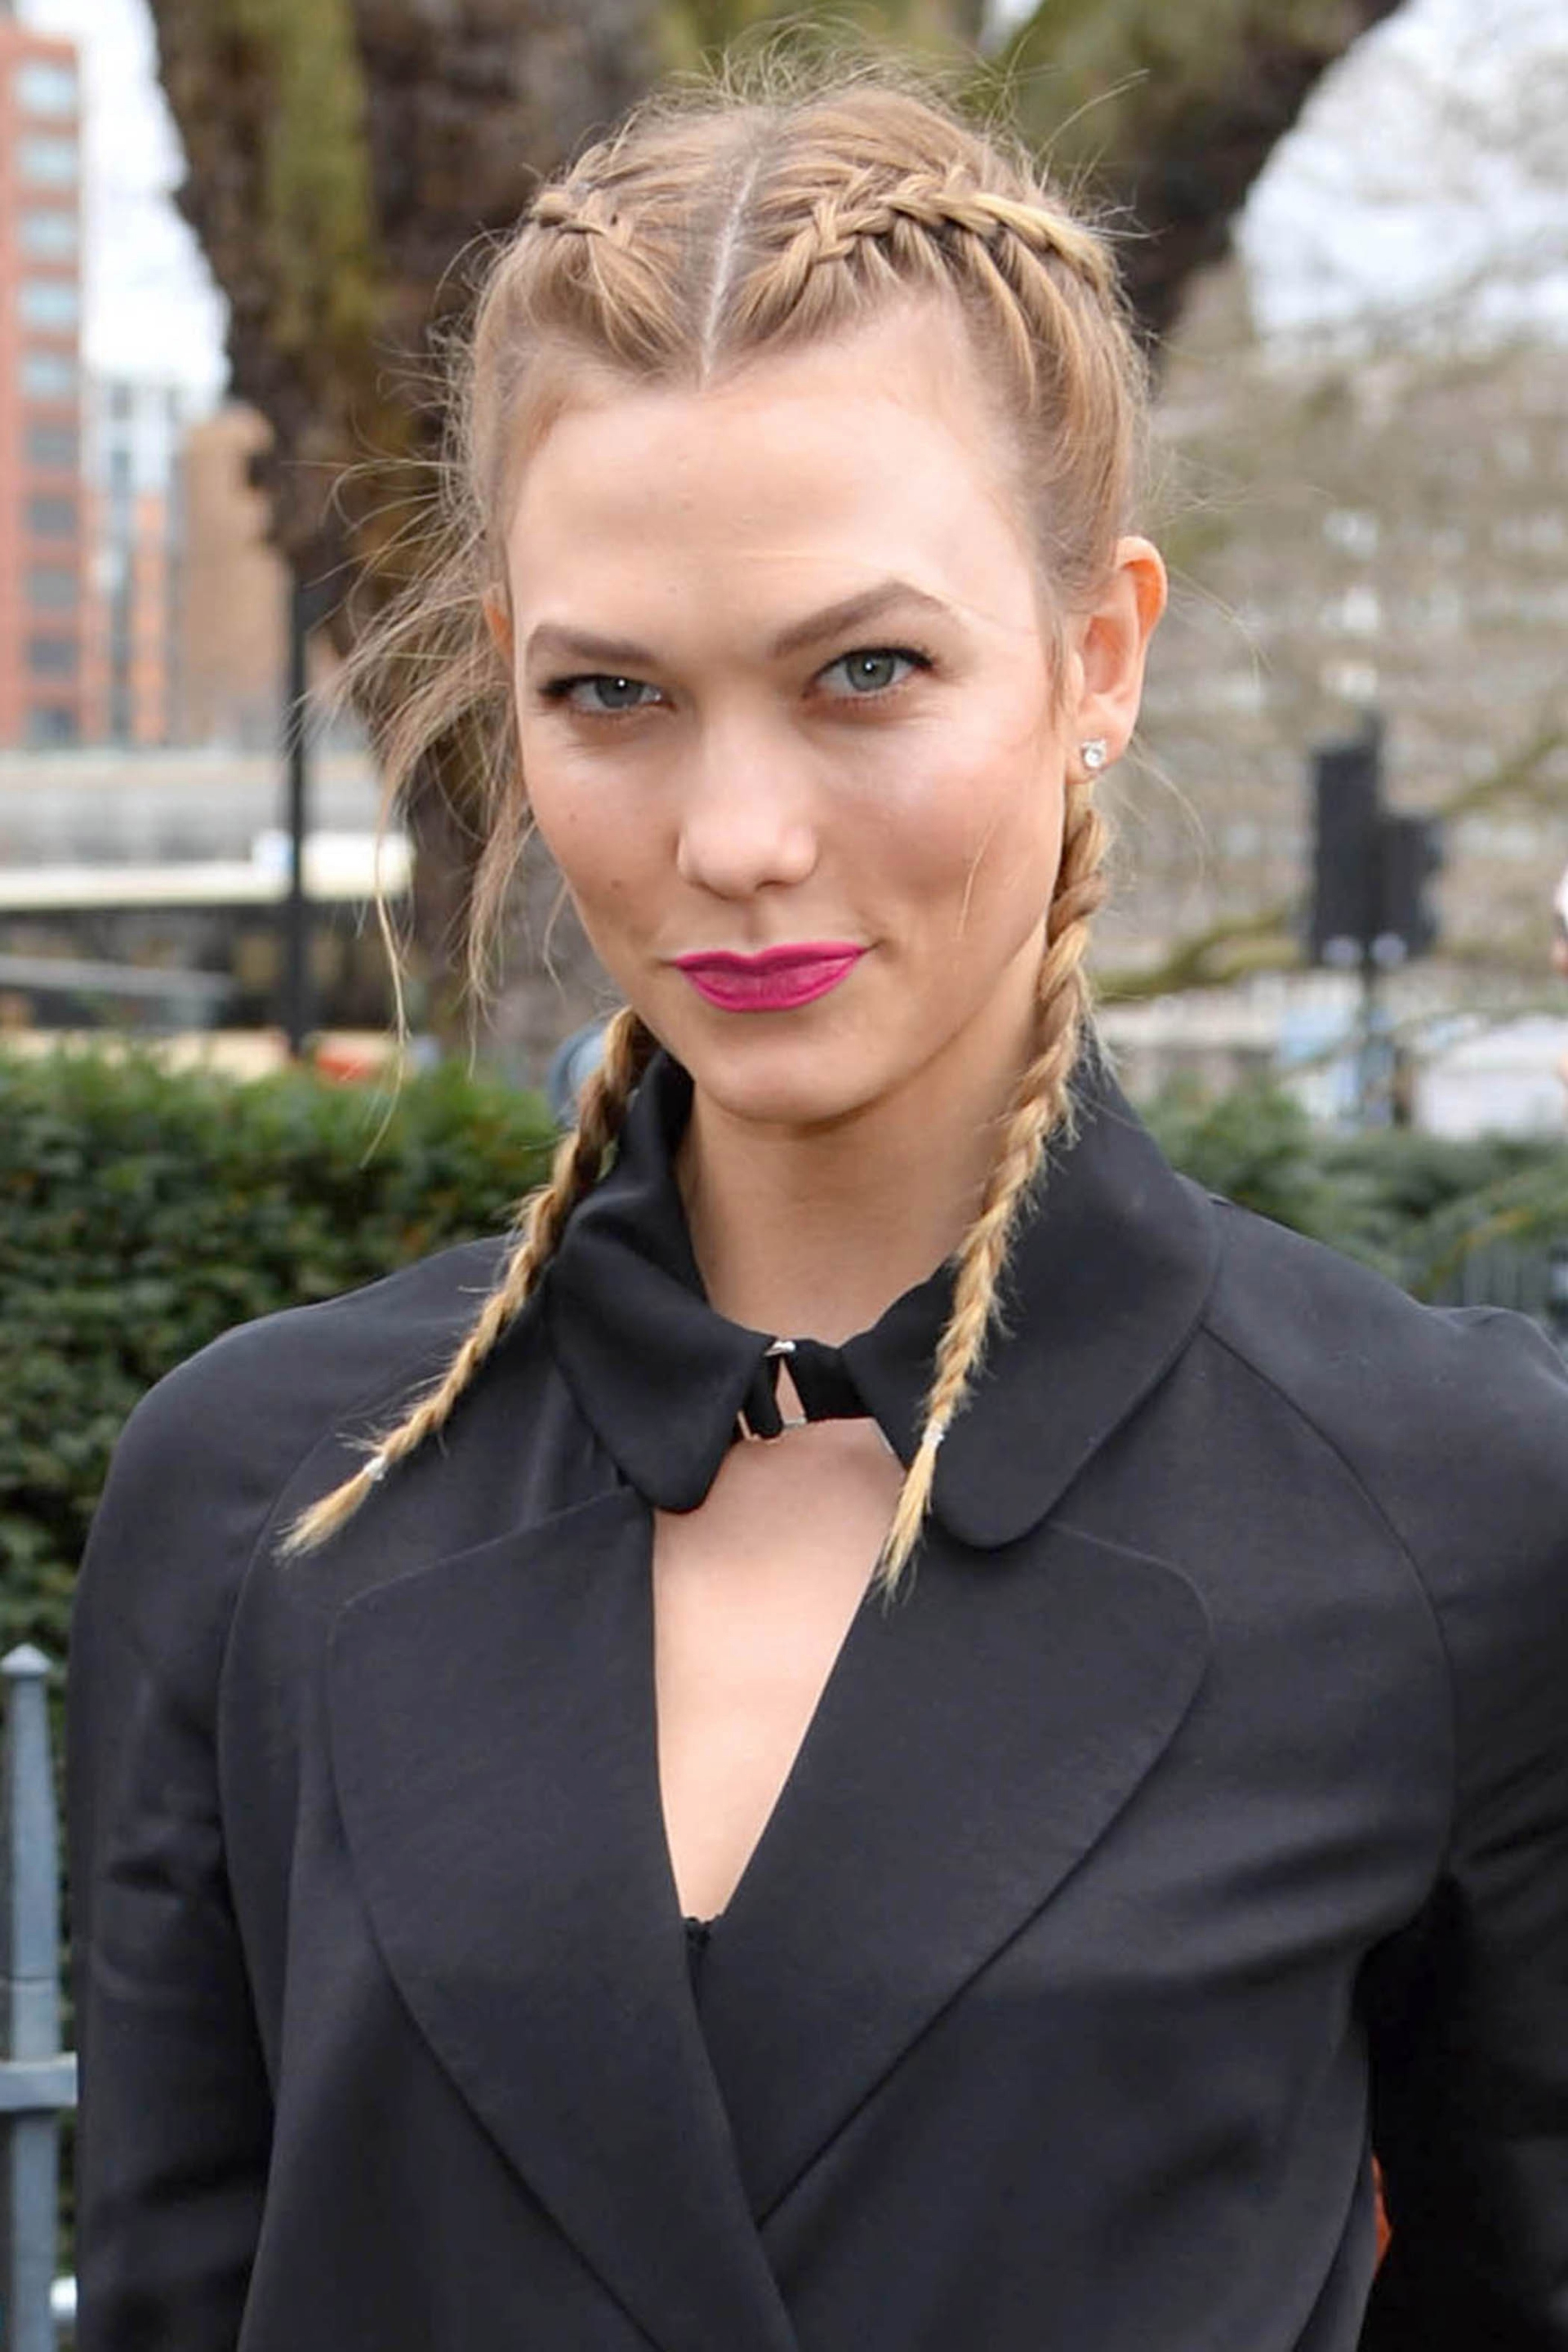 Karlie Kloss French Braided Pigtails..